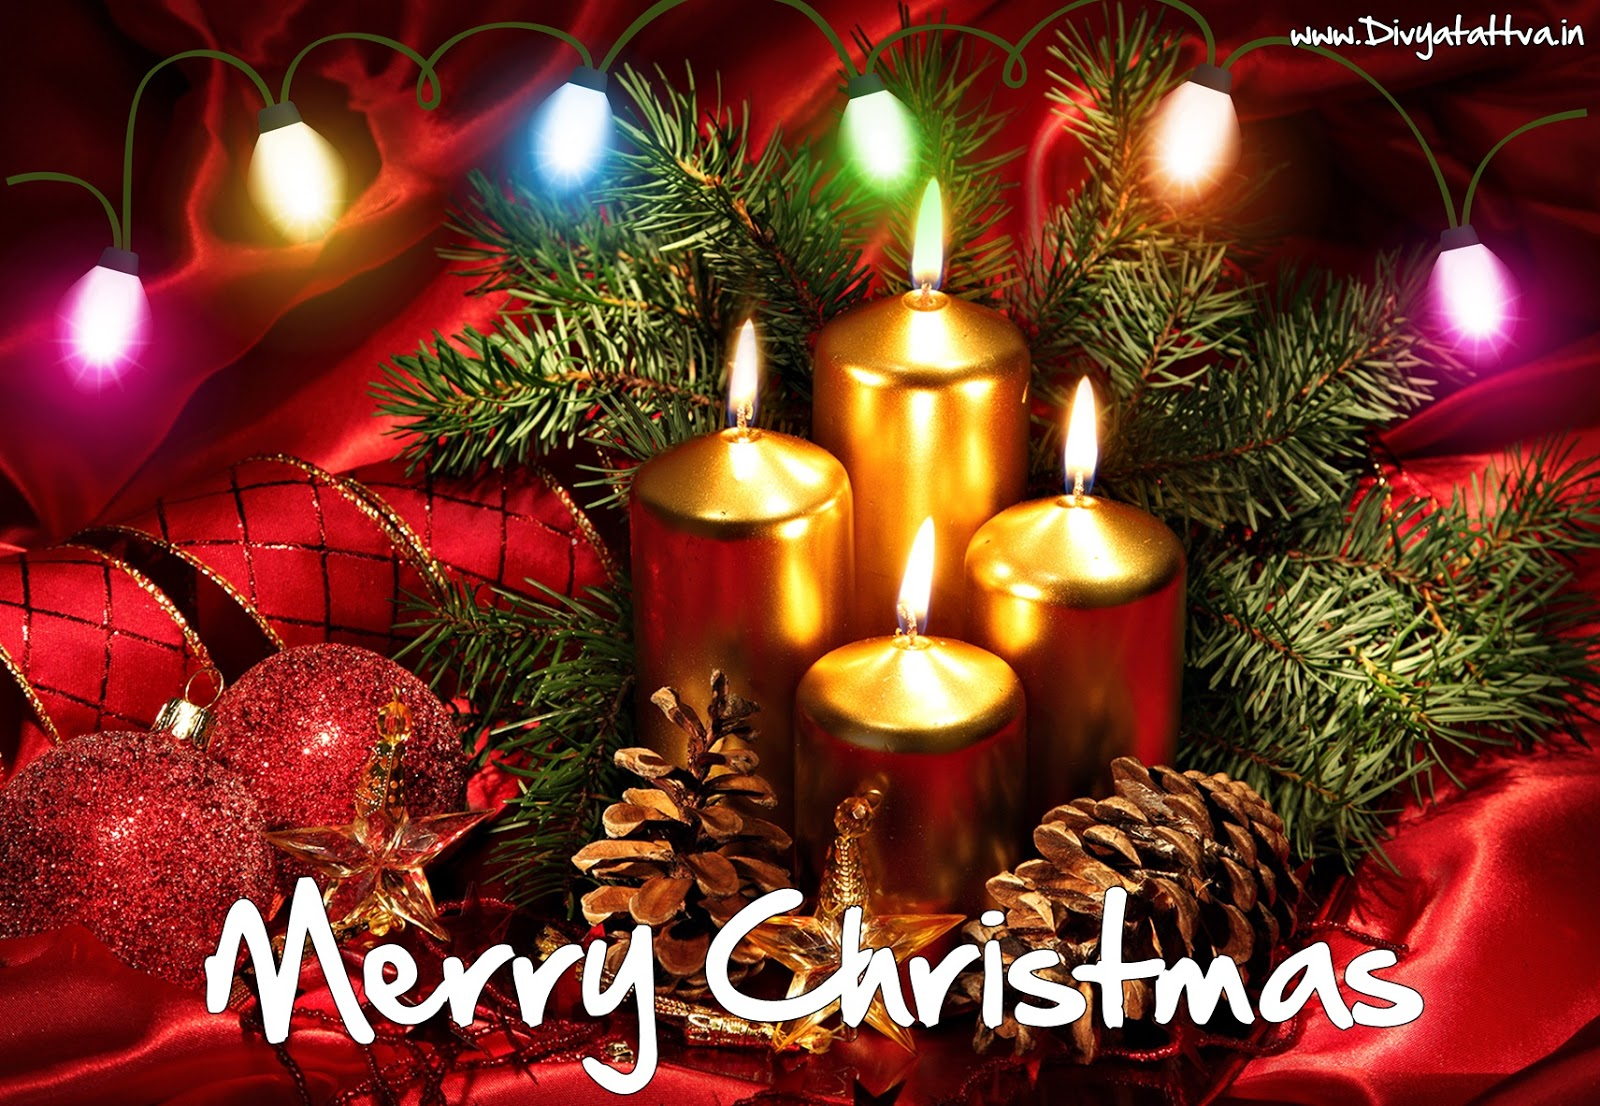 Divyatattva Astrology Free Horoscopes Psychic Tarot Yoga Tantra Occult Images Videos : Happy Christmas 25th Dec HD Wallpaper Backgrounds Decoration Pictures